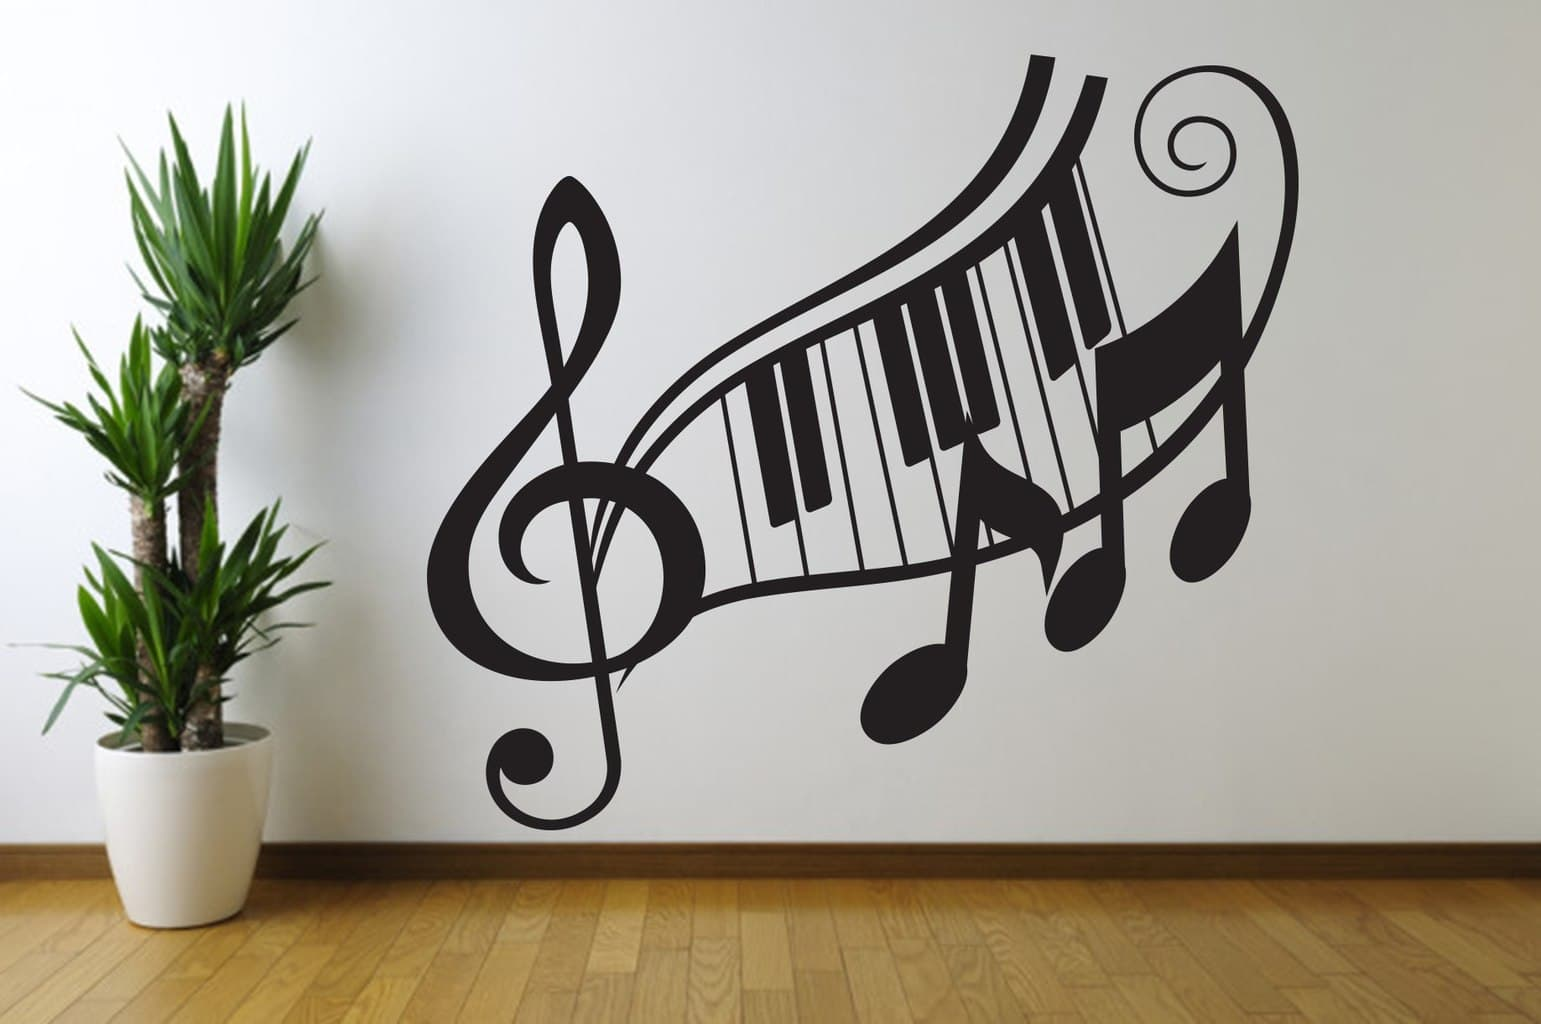 Decoration Wall Stickers Music Note Treble Clef Wall Art Decal